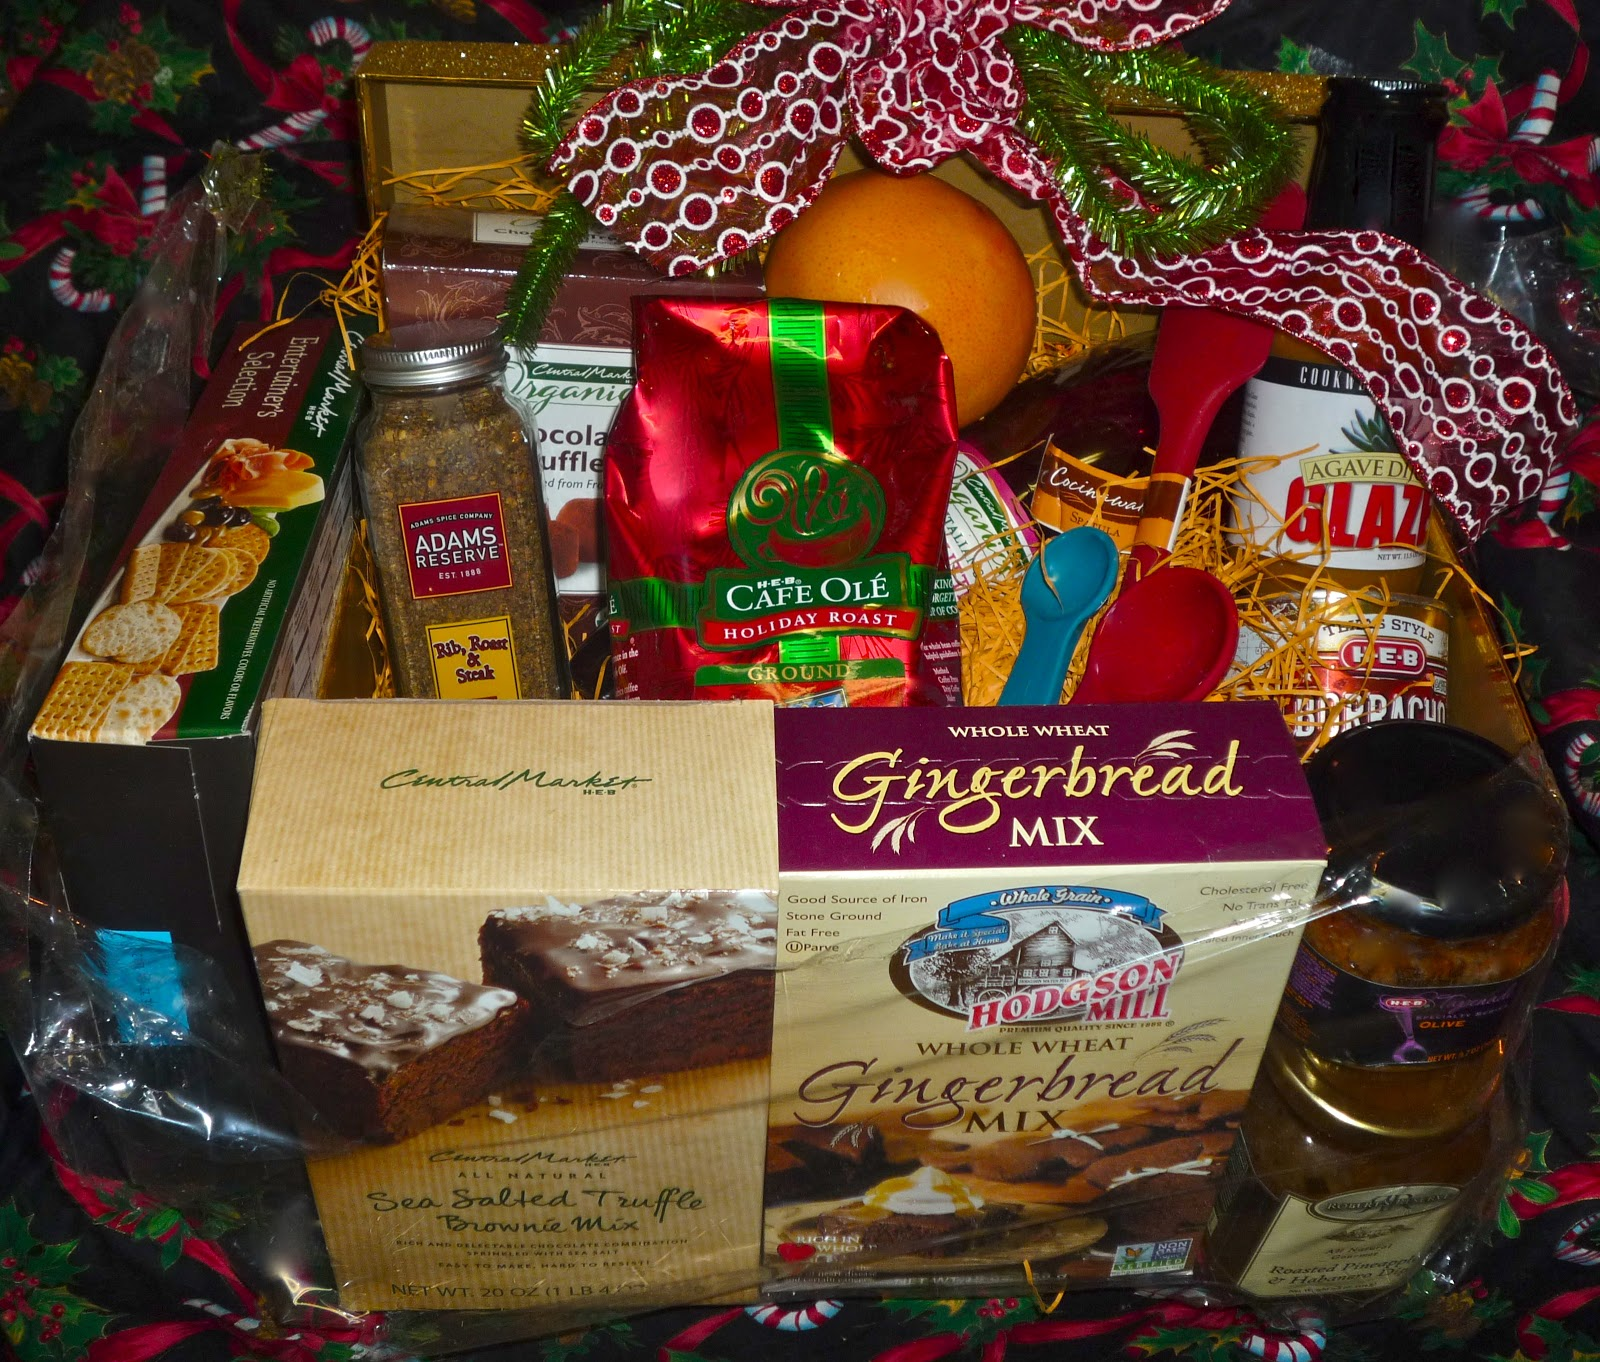 Measuring Spoons Heb: The Weekend Gourmet: Holiday Gift Baskets...Featuring HEB